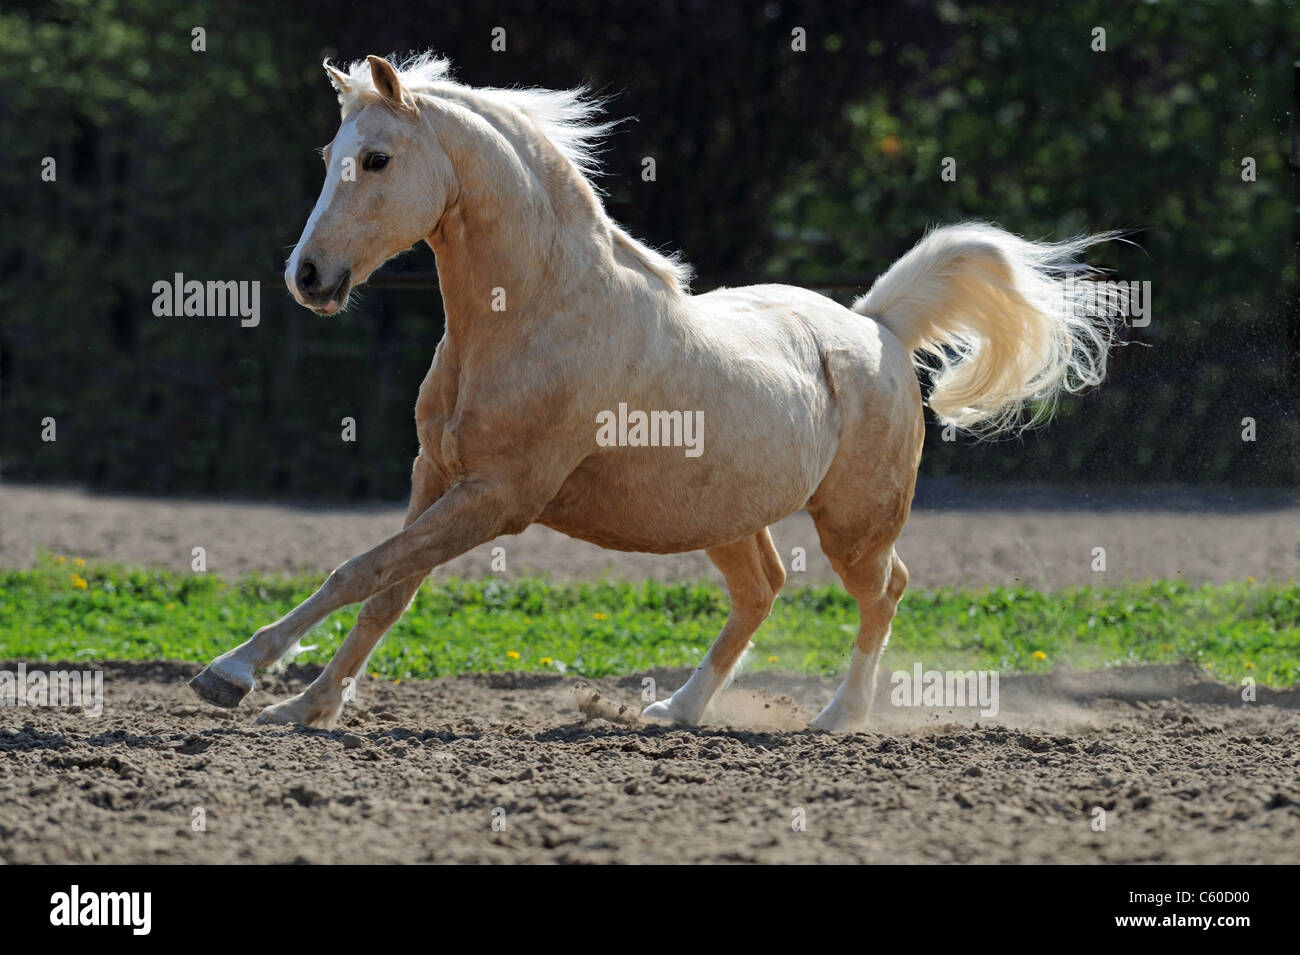 German Riding Pony (Equus ferus caballus). Palomino gelding in a gallop on a paddock. - Stock Image